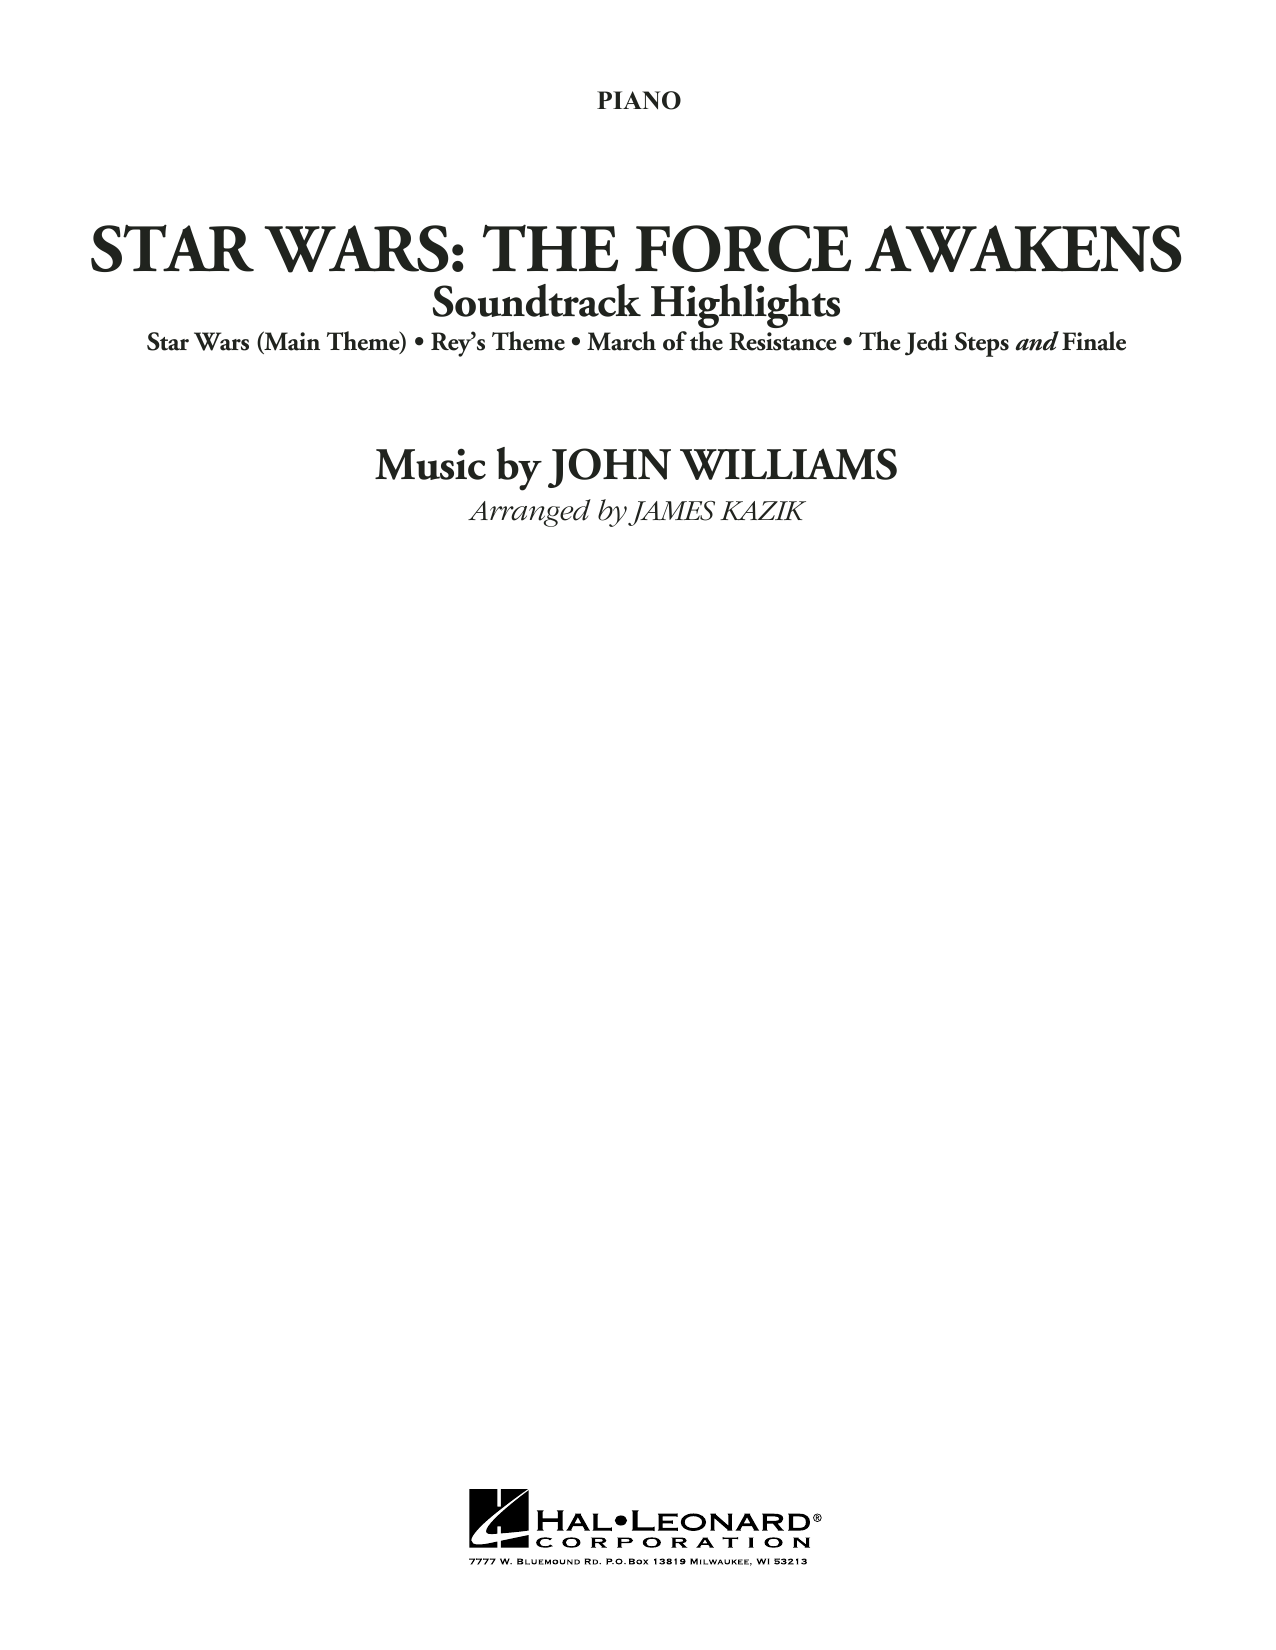 John Williams - Star Wars: The Force Awakens Soundtrack Highlights - Piano